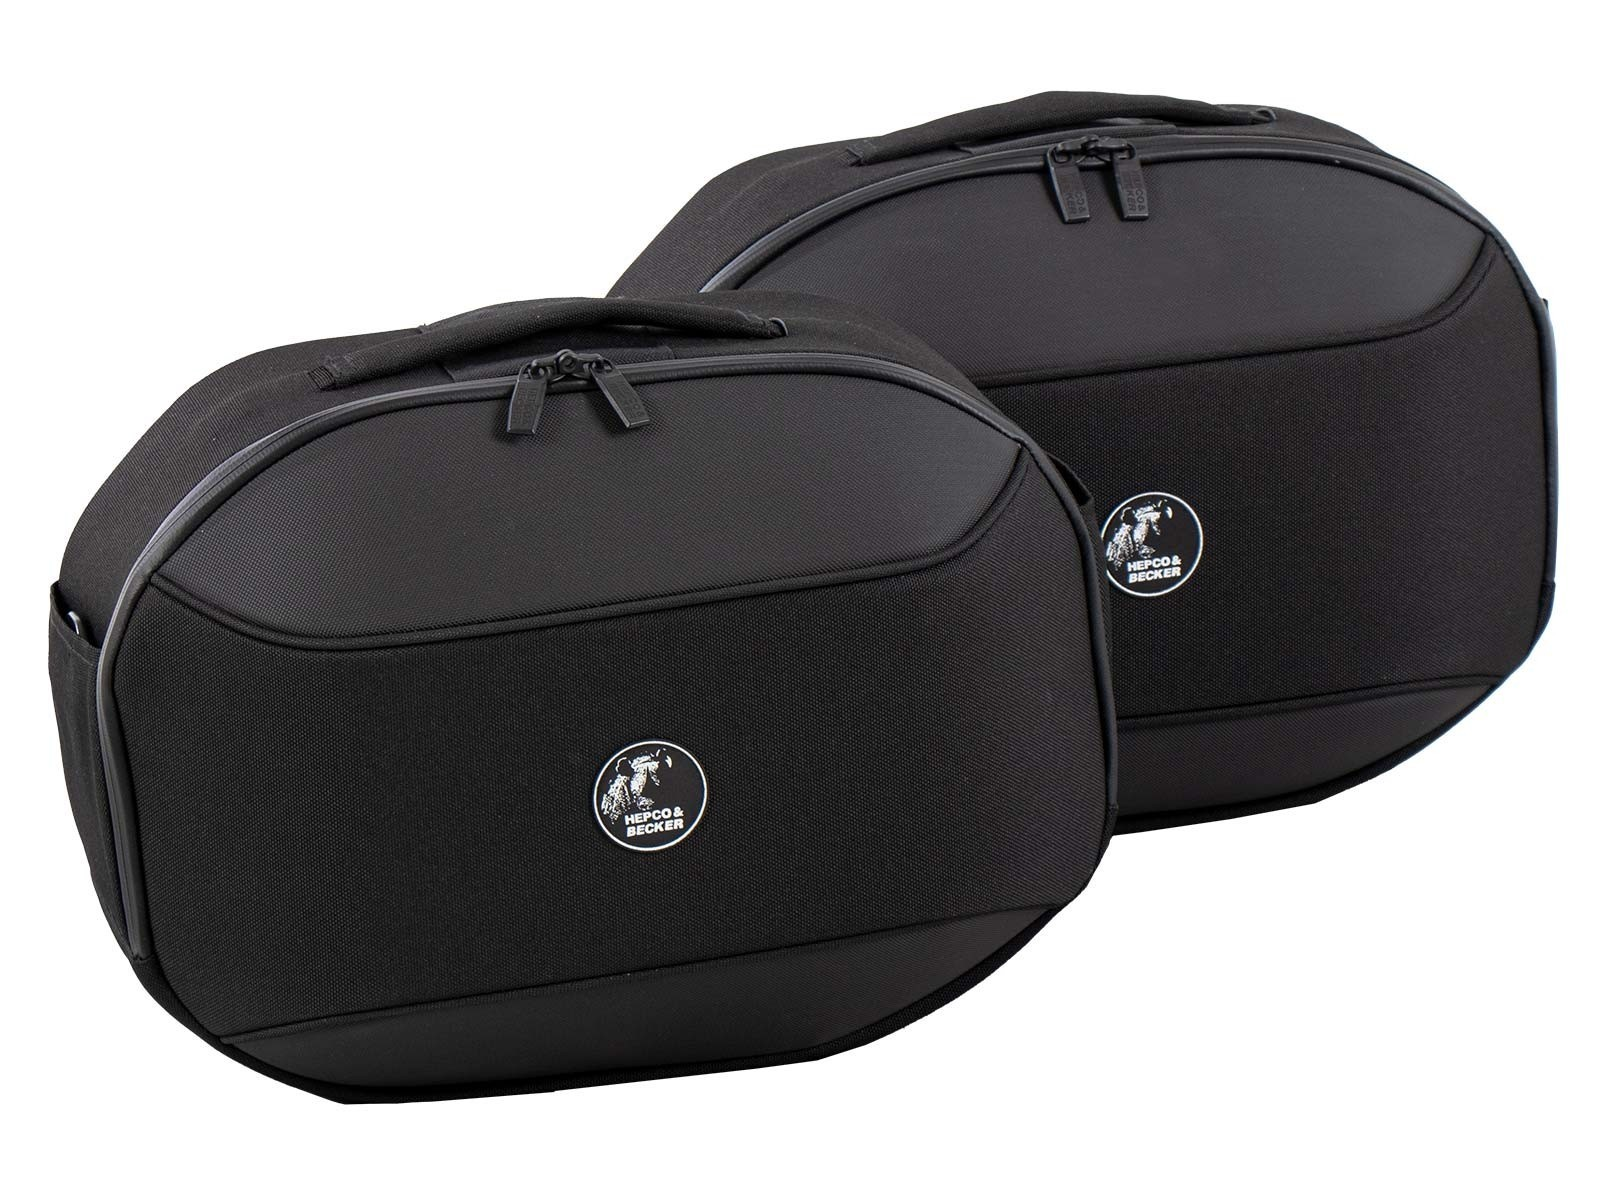 Triumph Tiger 800 Panniers Hepco & Becker Street Softbag Luggage with full fitting kit